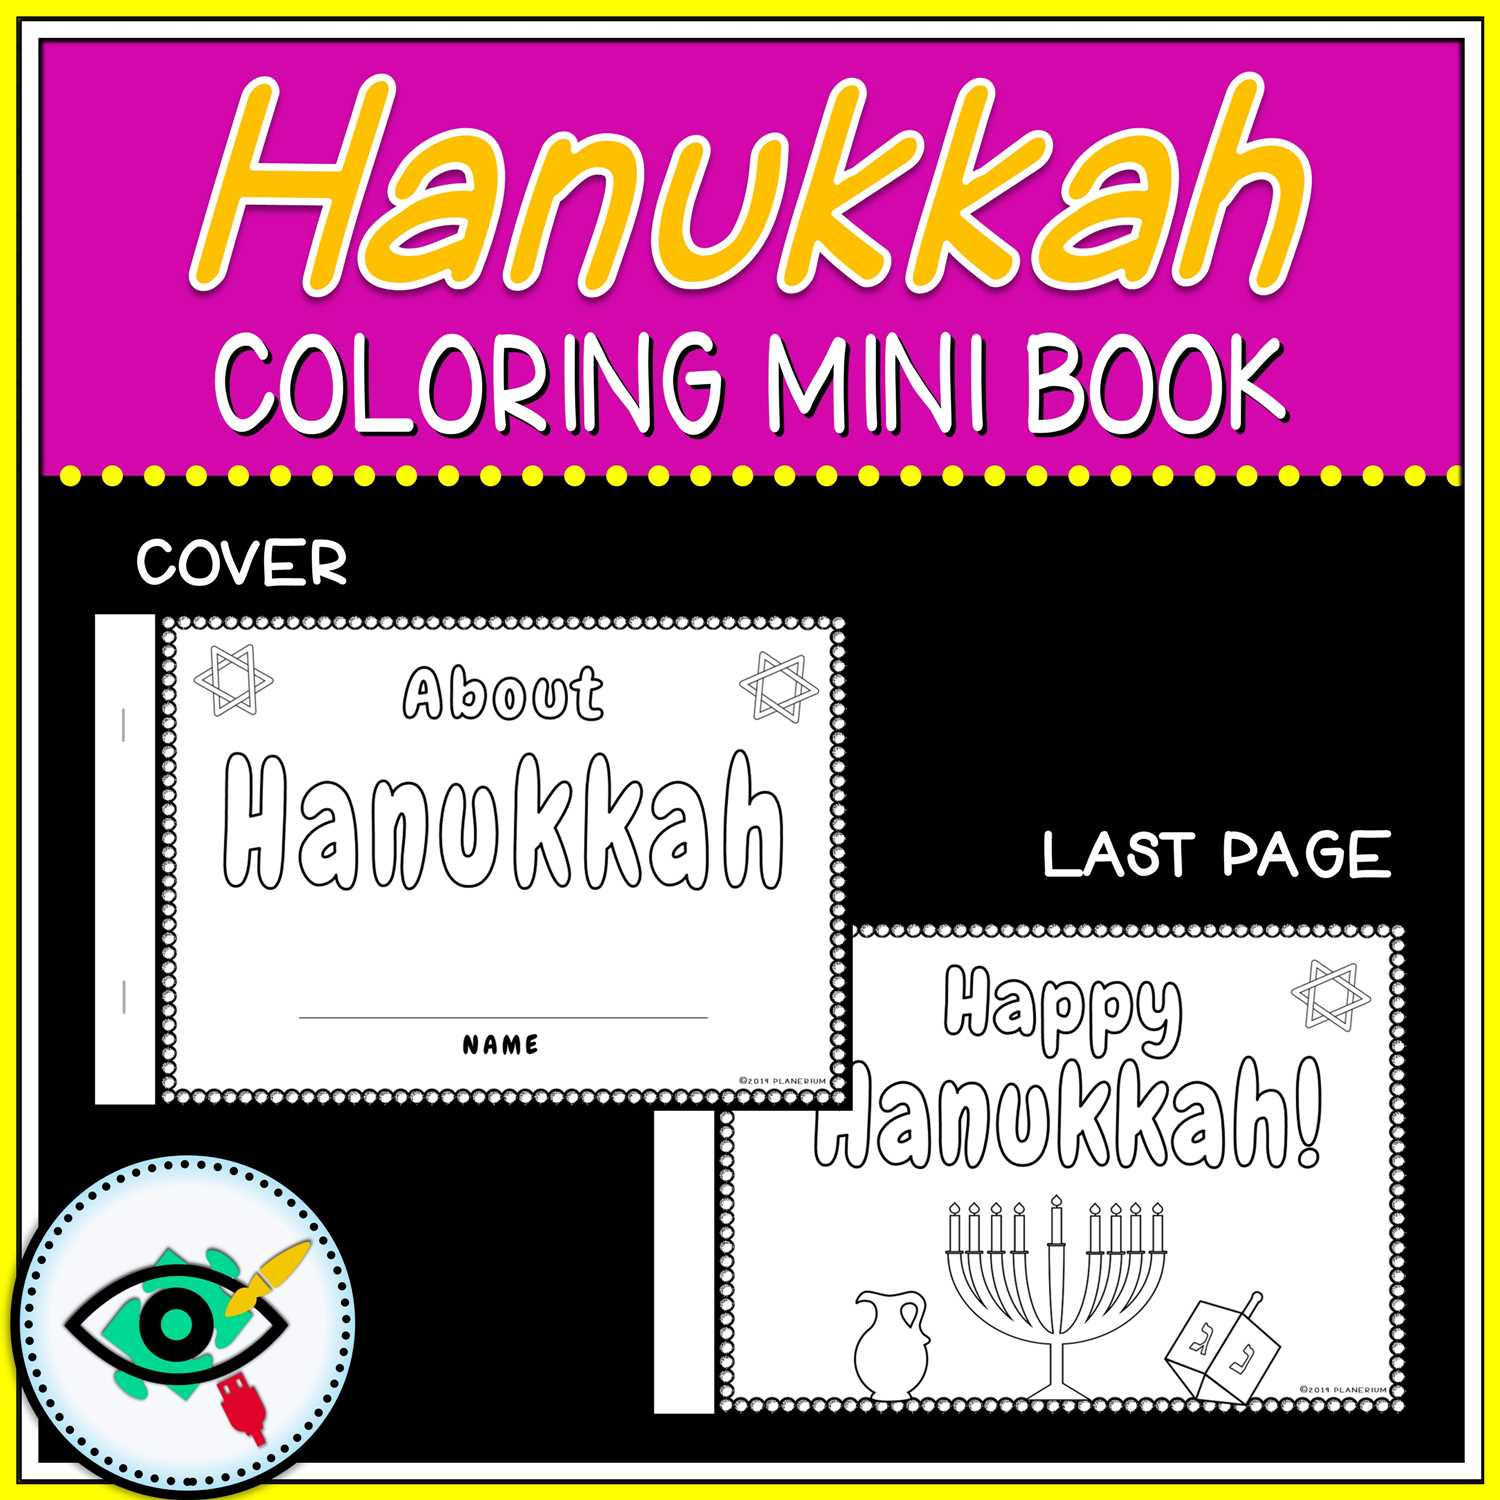 Hanukkah Coloring Pages - Mini Book - Featured One | Planerium